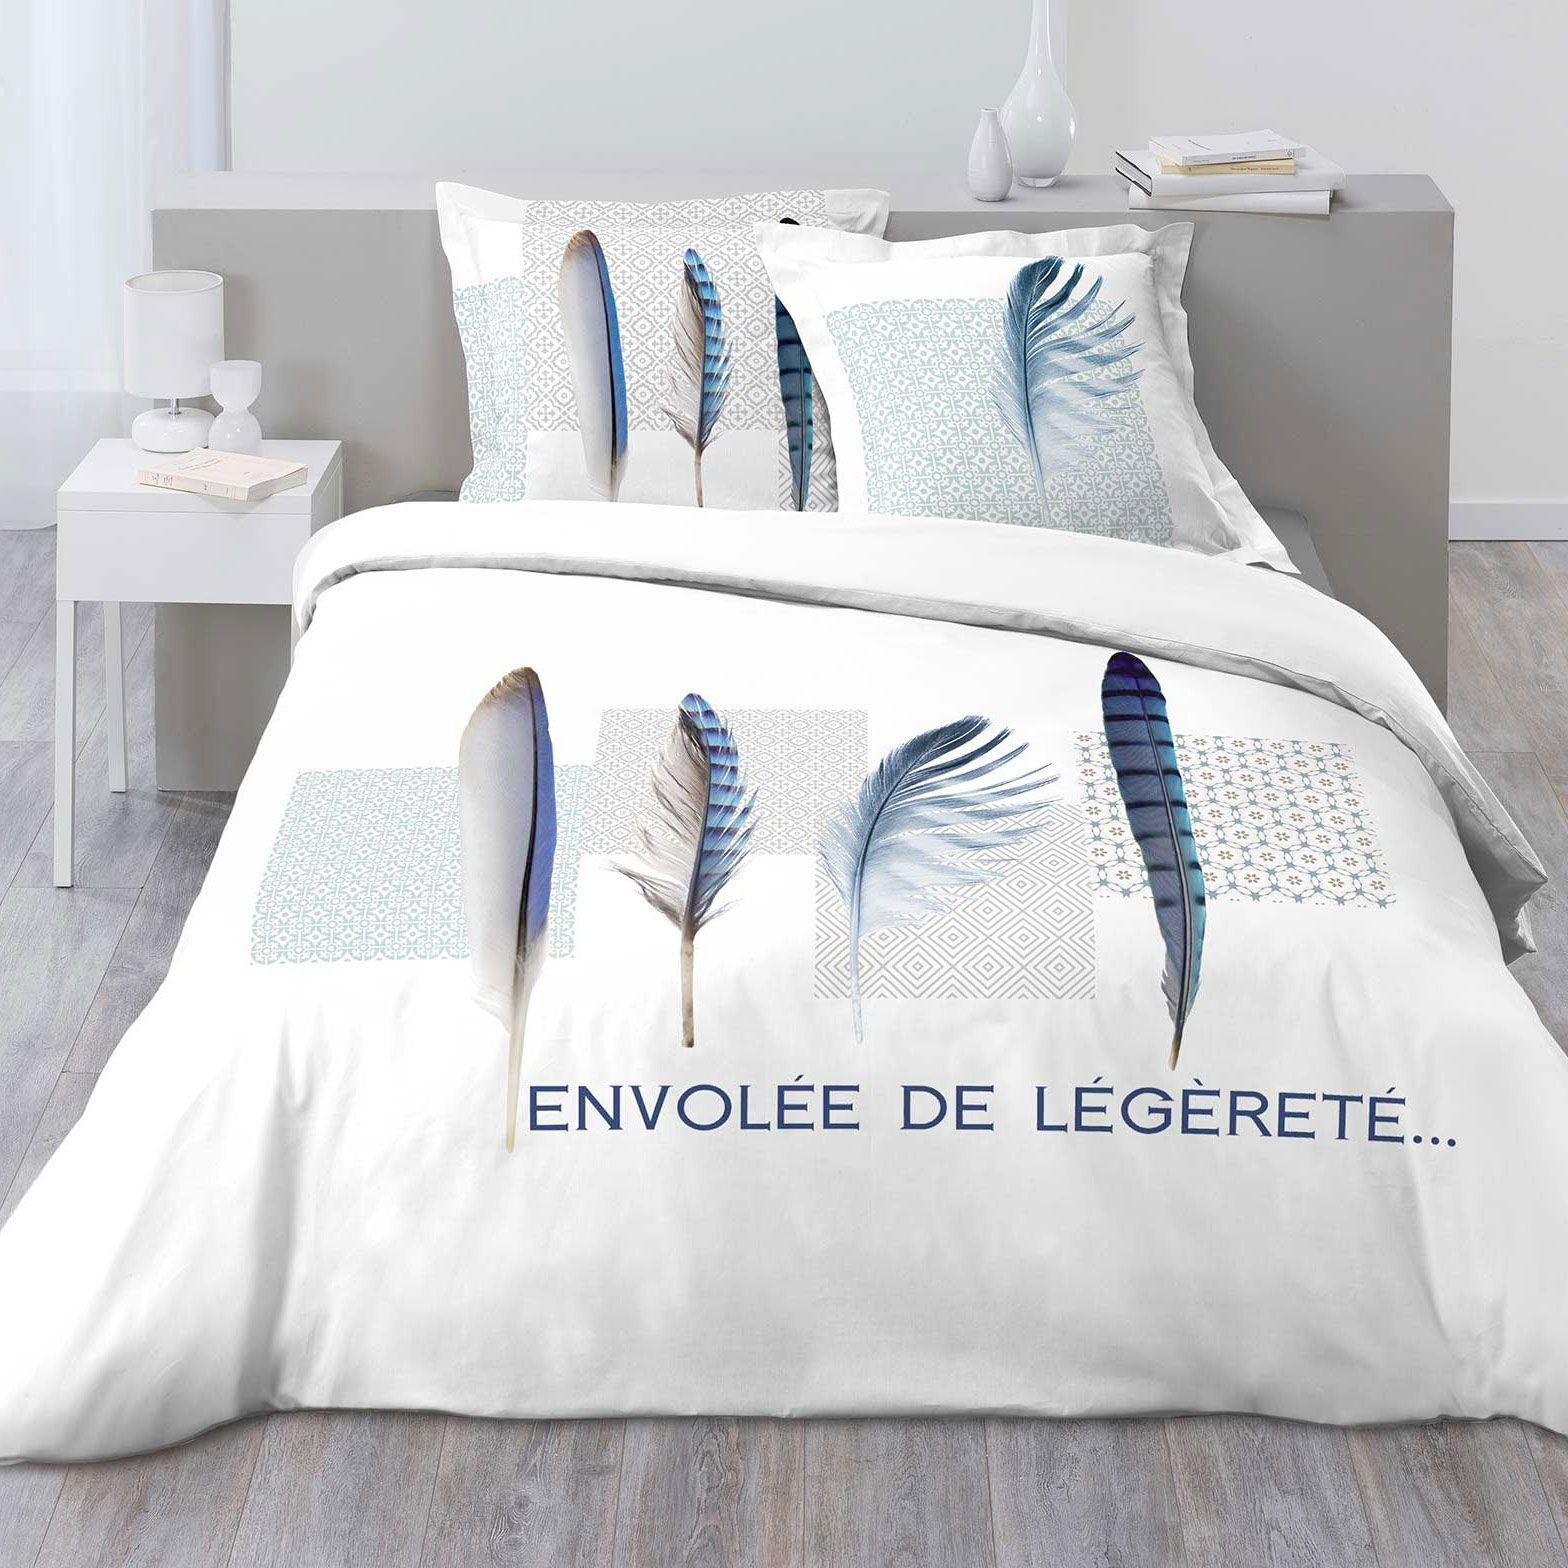 housse de couette et deux taies blue plume 100 coton 240 cm bleu clair housse de couette. Black Bedroom Furniture Sets. Home Design Ideas